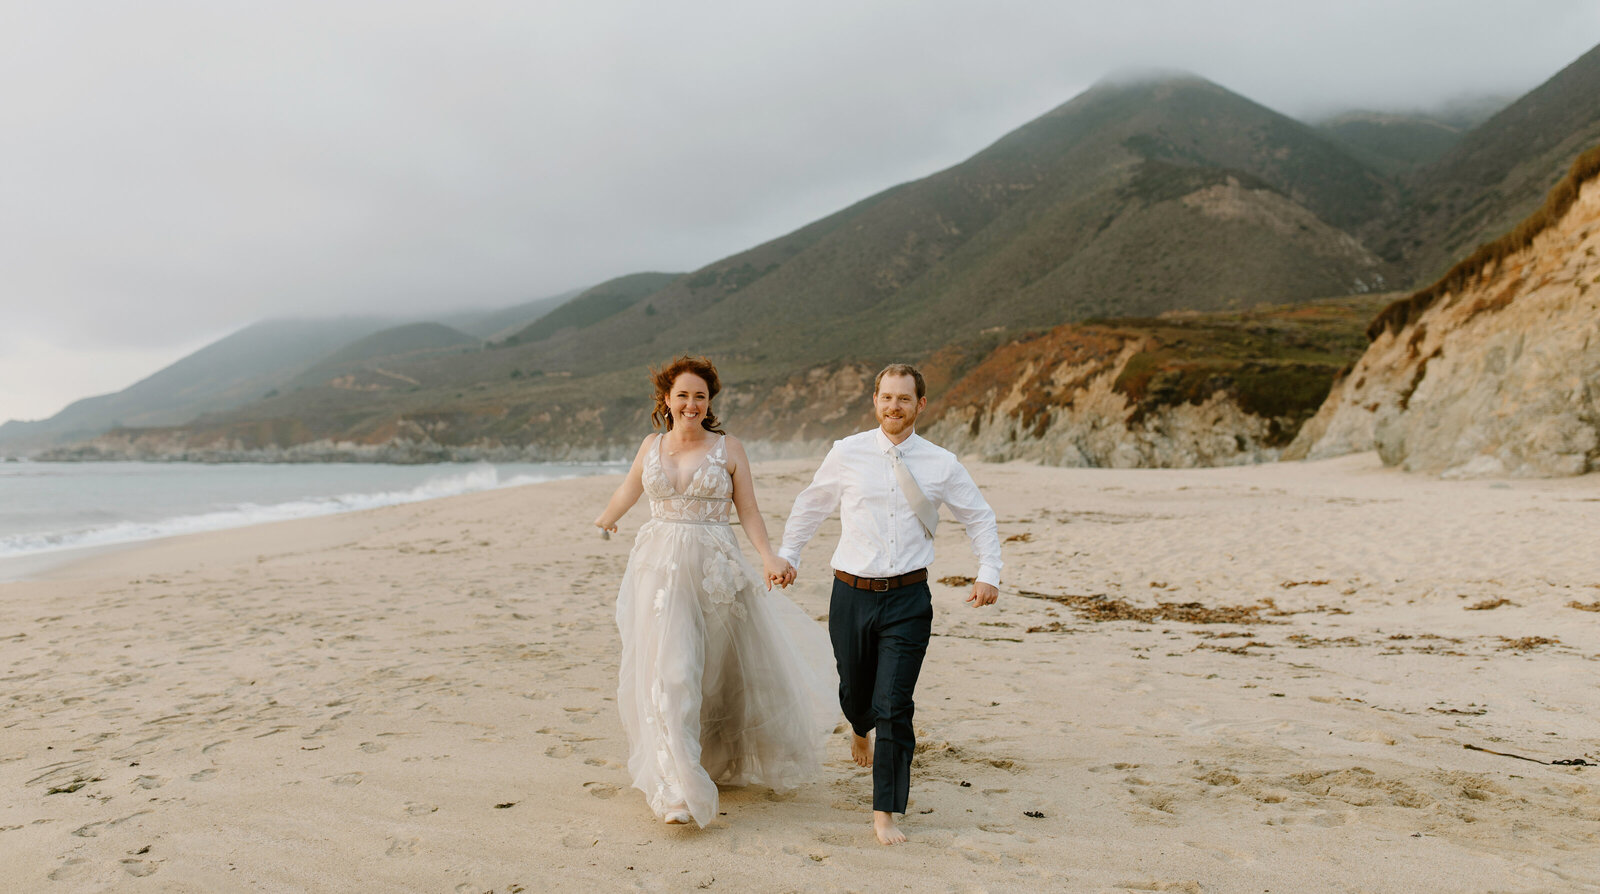 Laura & Harrison - Big Sur Elopement - Tess Laureen Photography @tesslaureen - 9679 crop